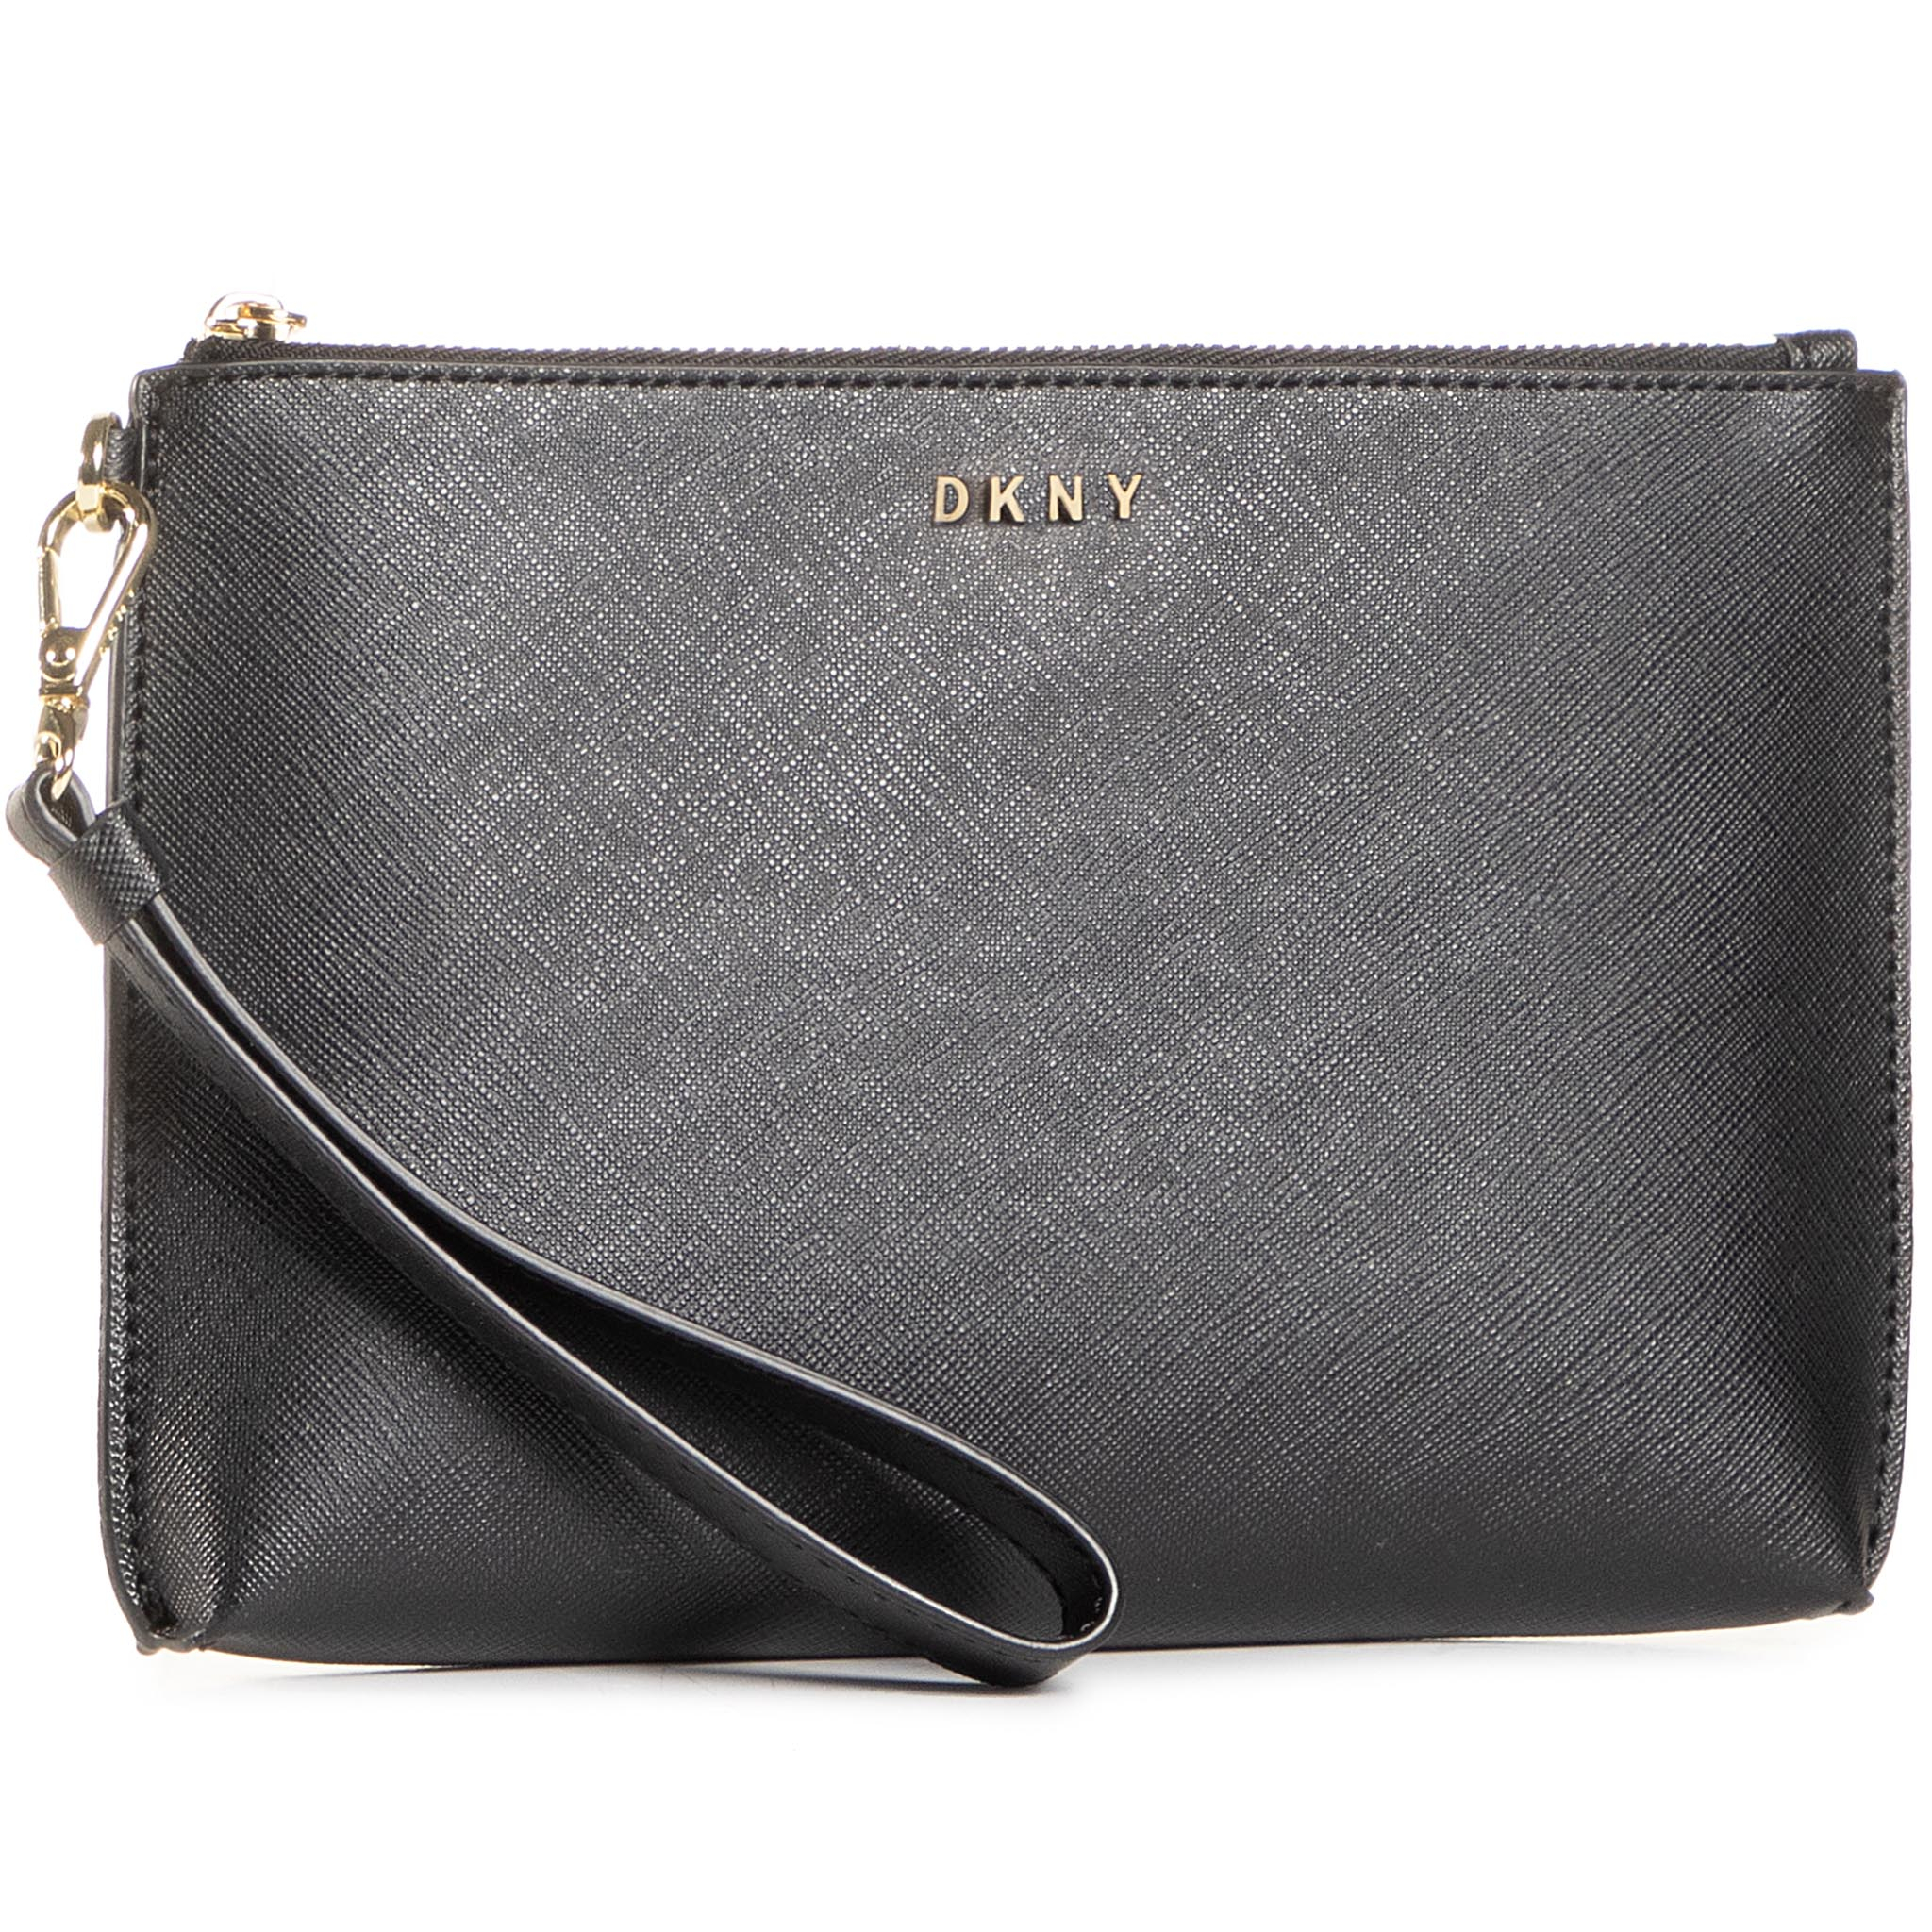 Image of Handtasche DKNY - Gifting Pouch R03R1K50 Blk/Gold BGD